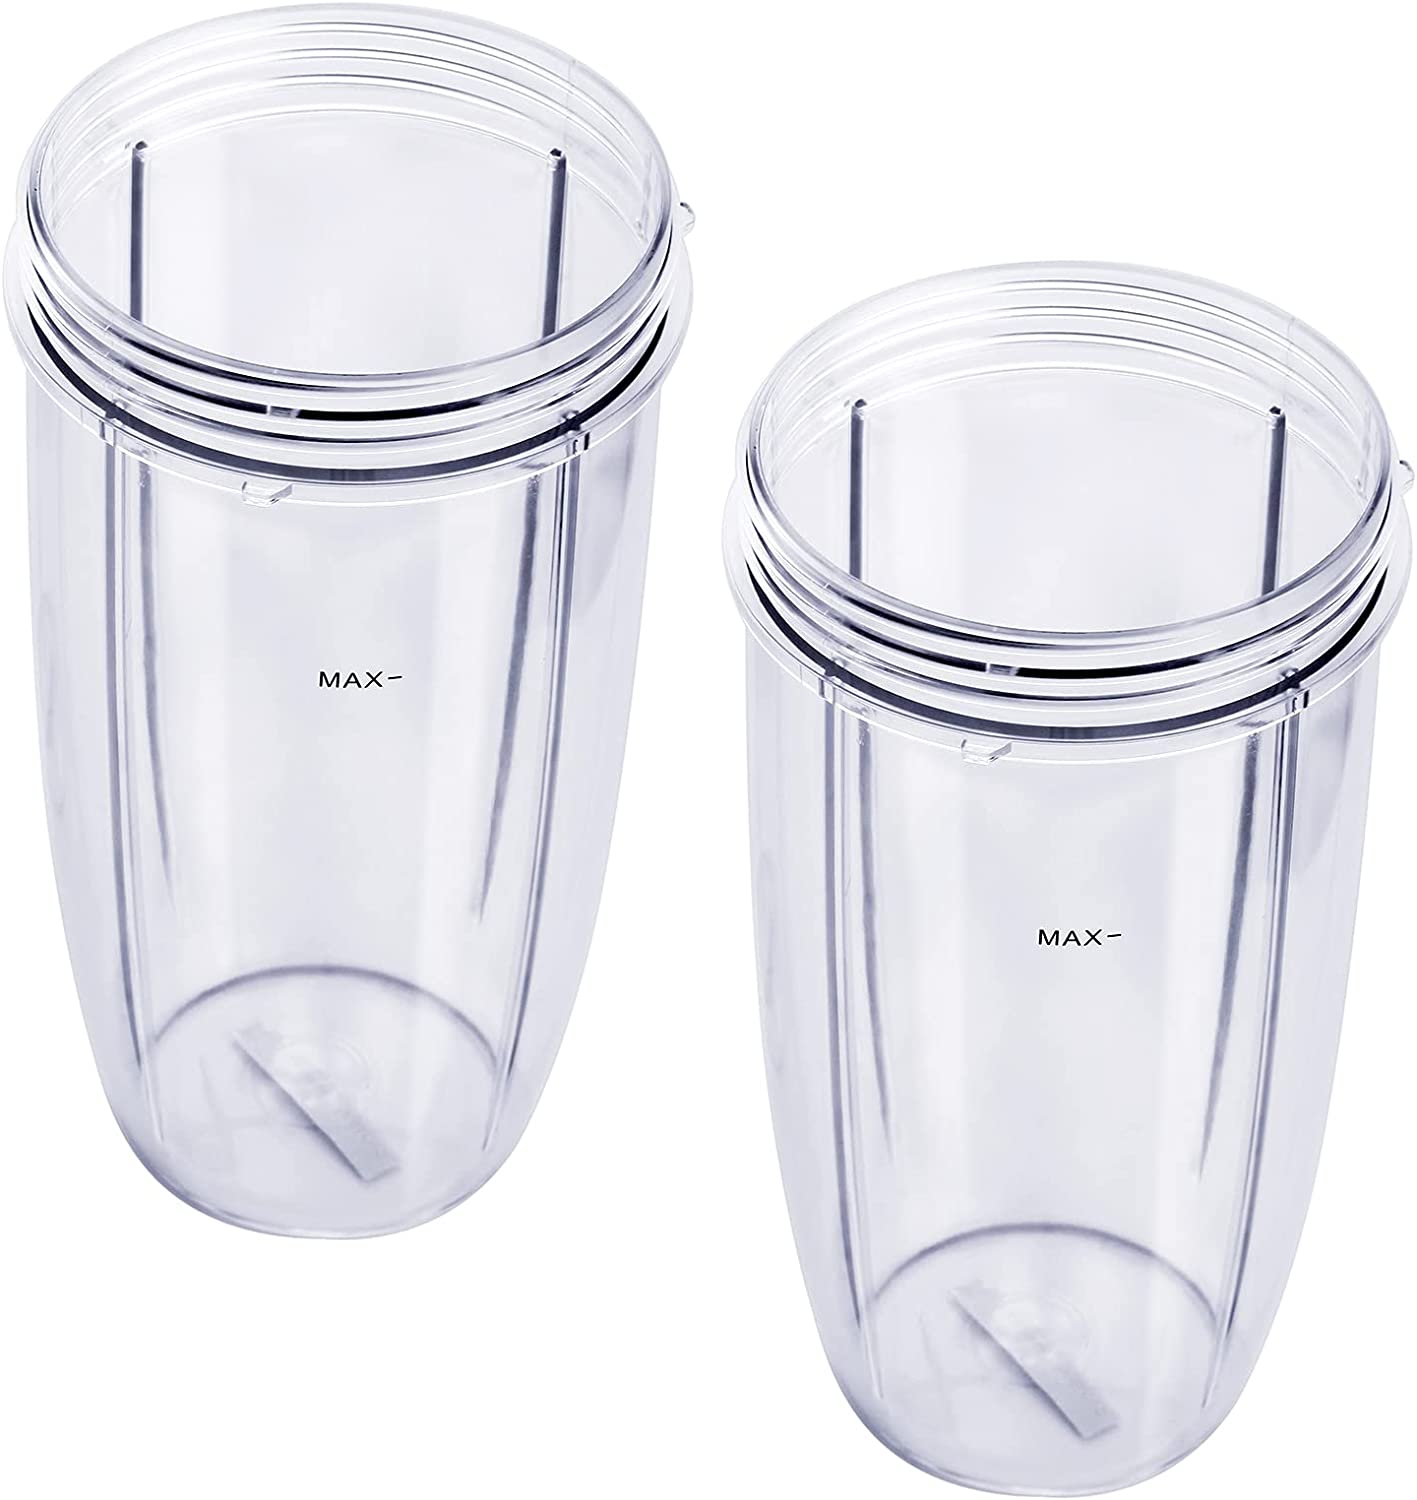 Blender Cups Replacement for nutribullet 32oz, Compatible with nutribullet Blender 600W and 900W Models NB-101B, NB-101S, NB-201. Clear, Upgraded Material, Pack of 2